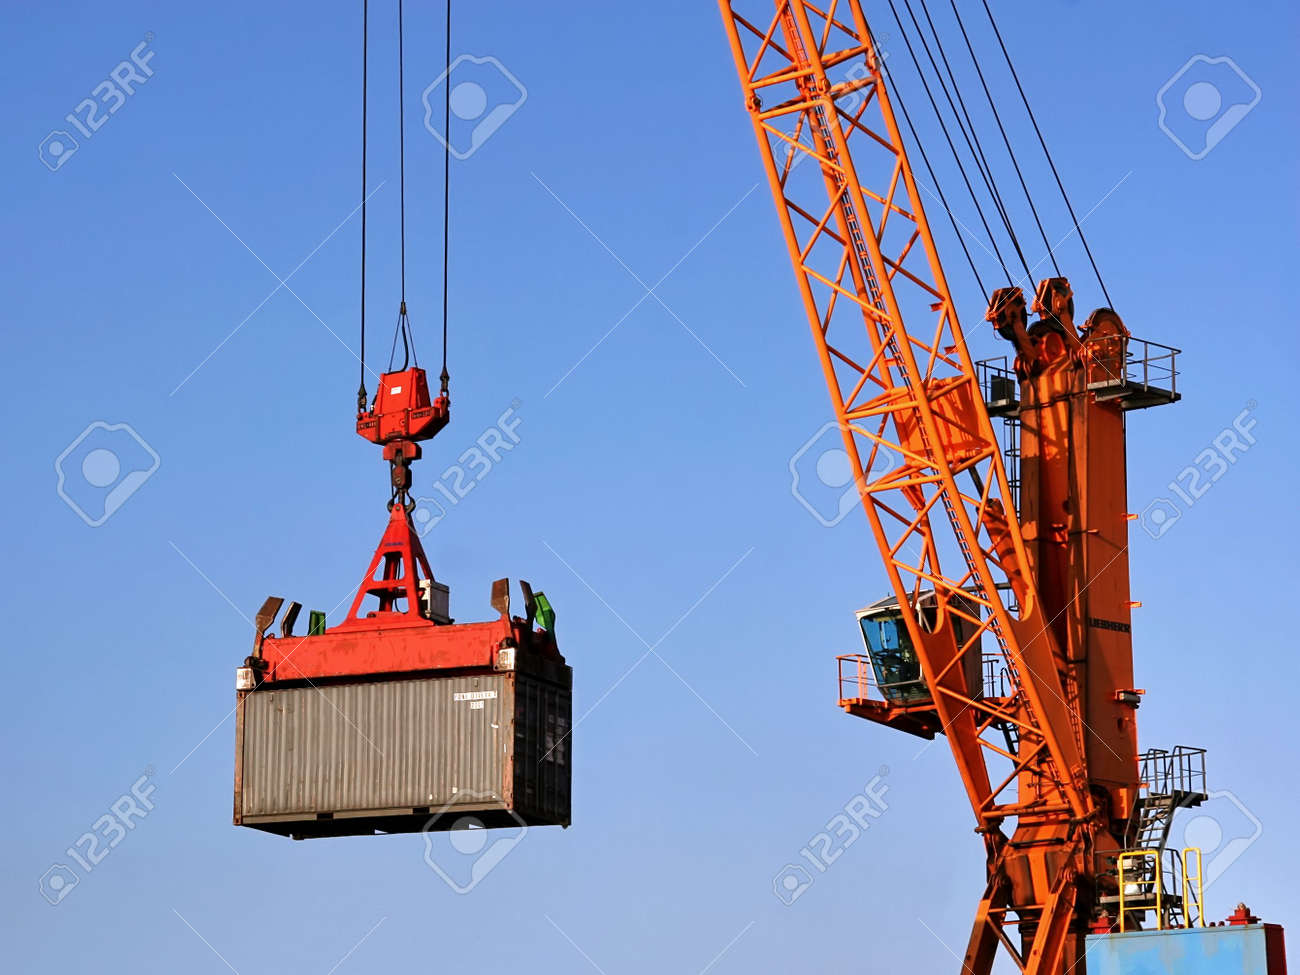 Container being lifted by a crane Stock Photo - 4958086